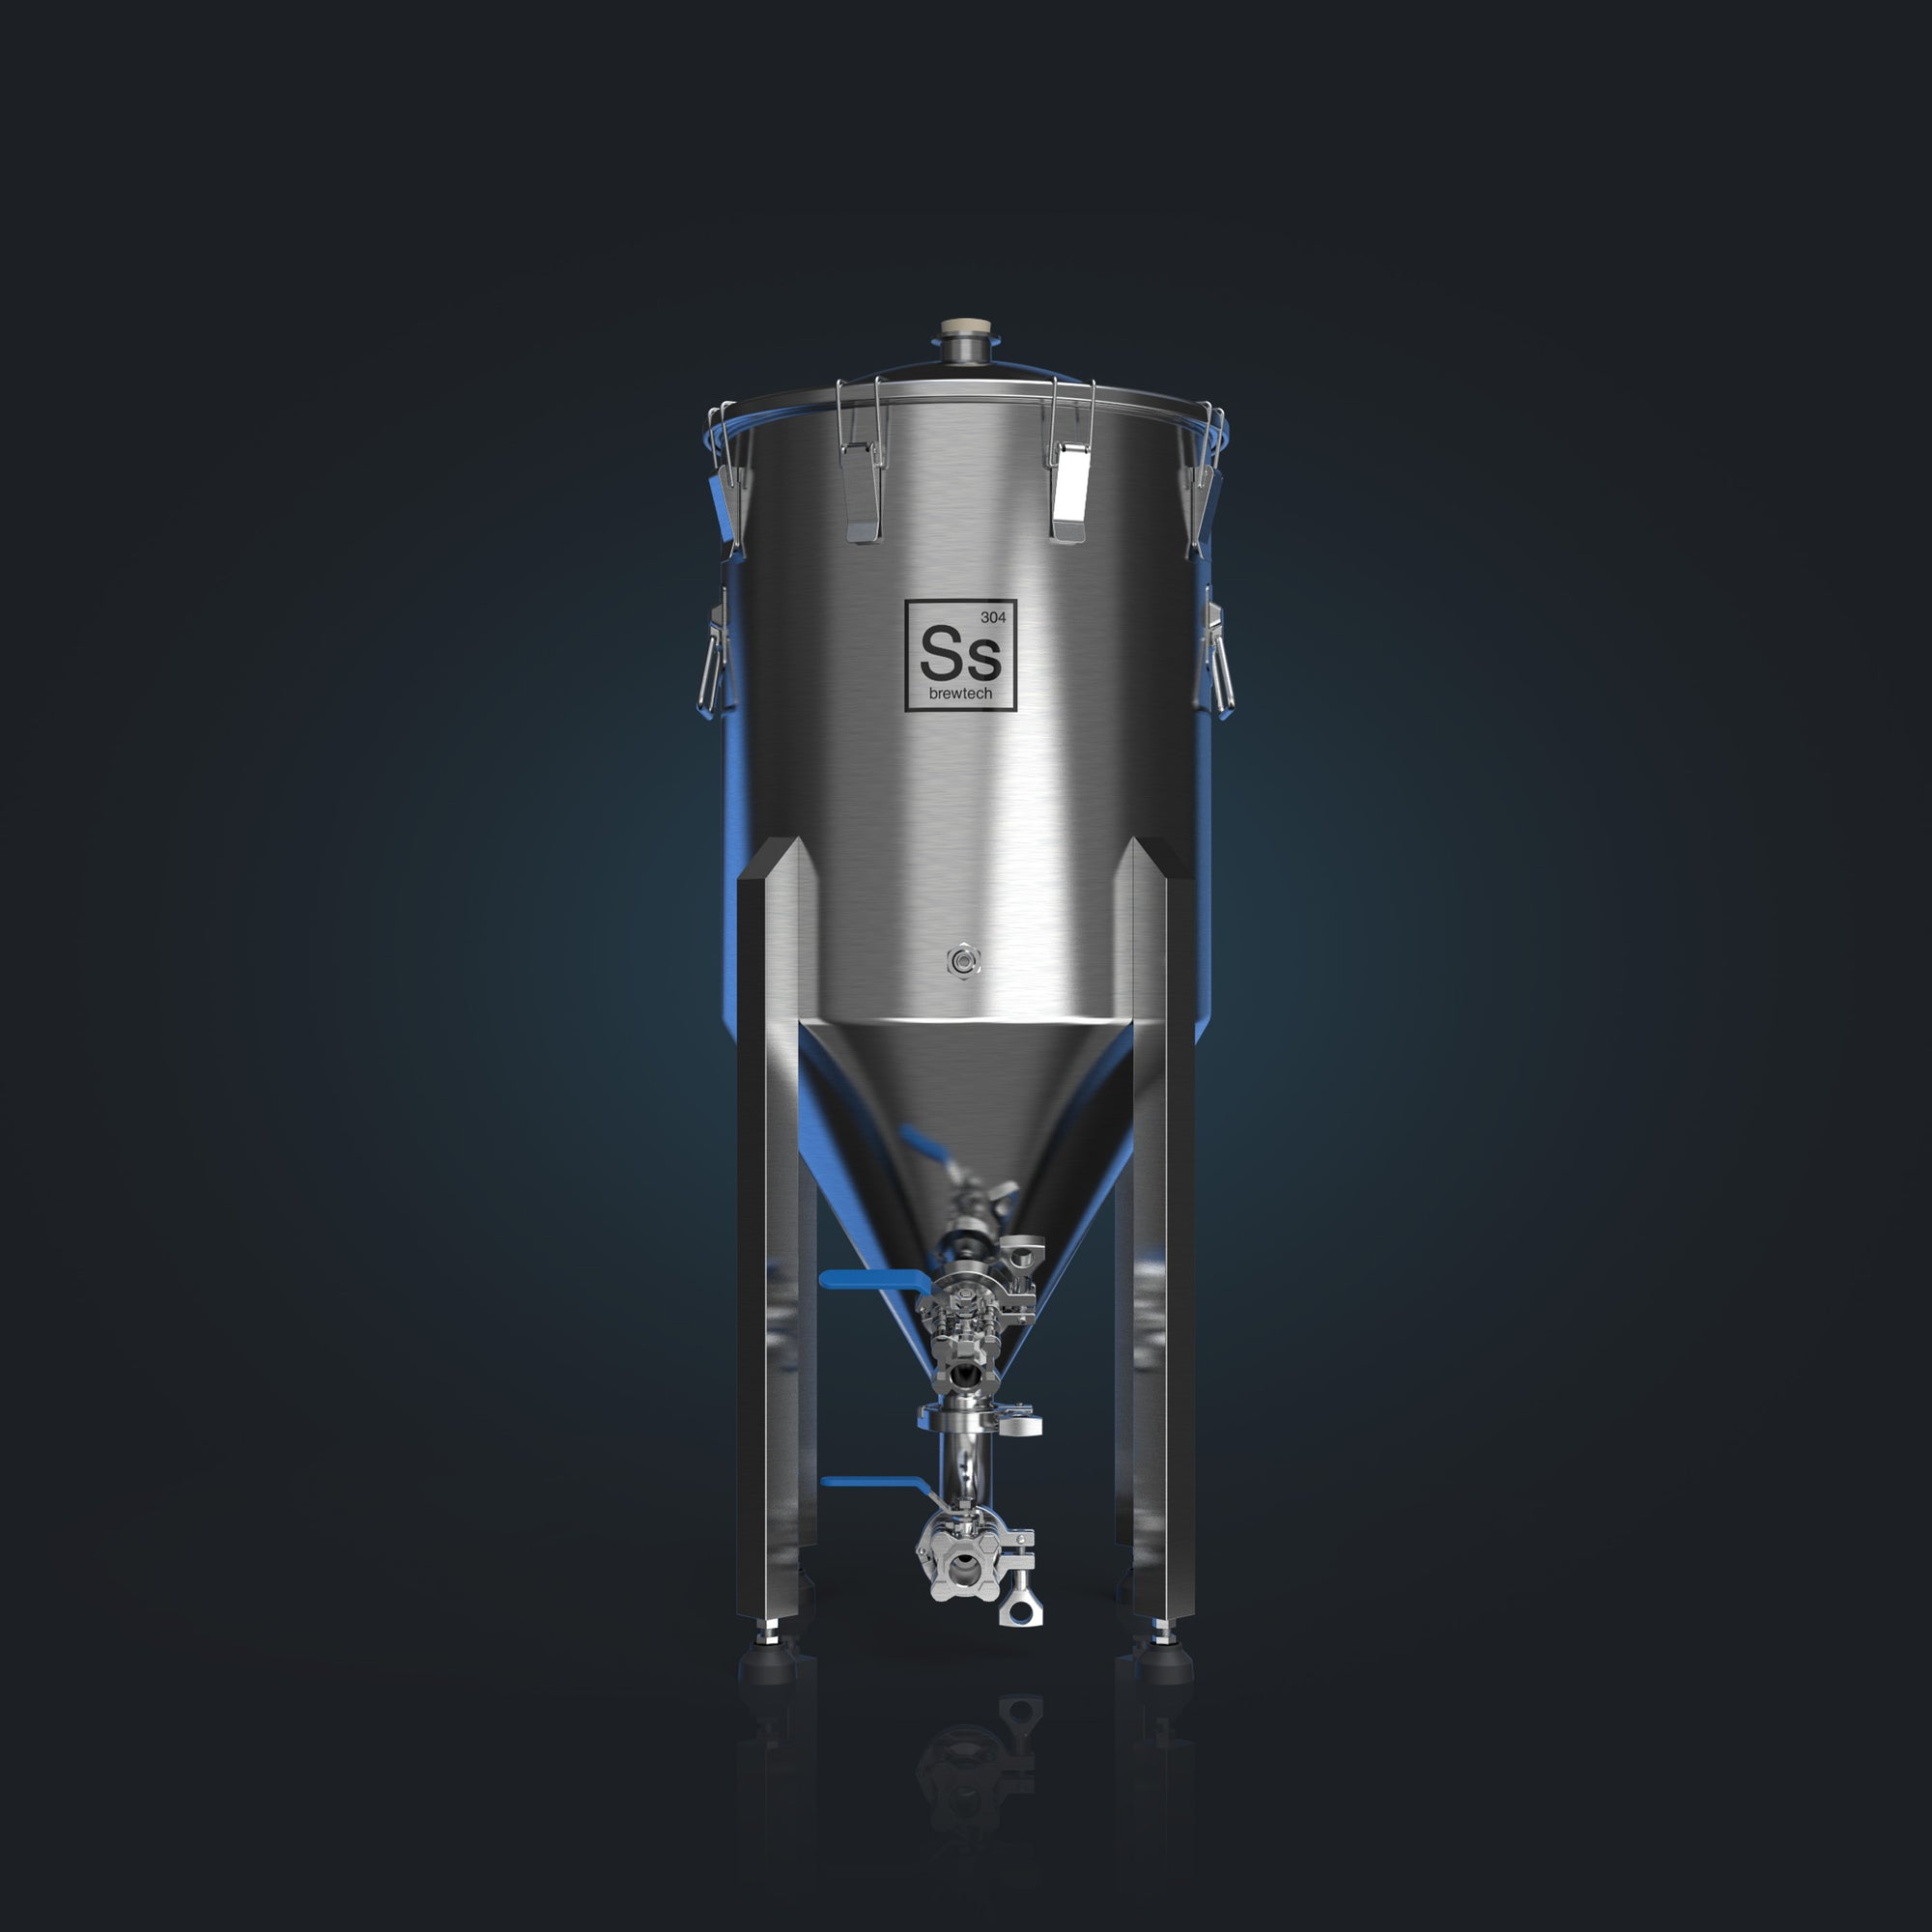 Chronical Fermenter | Professional features for the home brewer